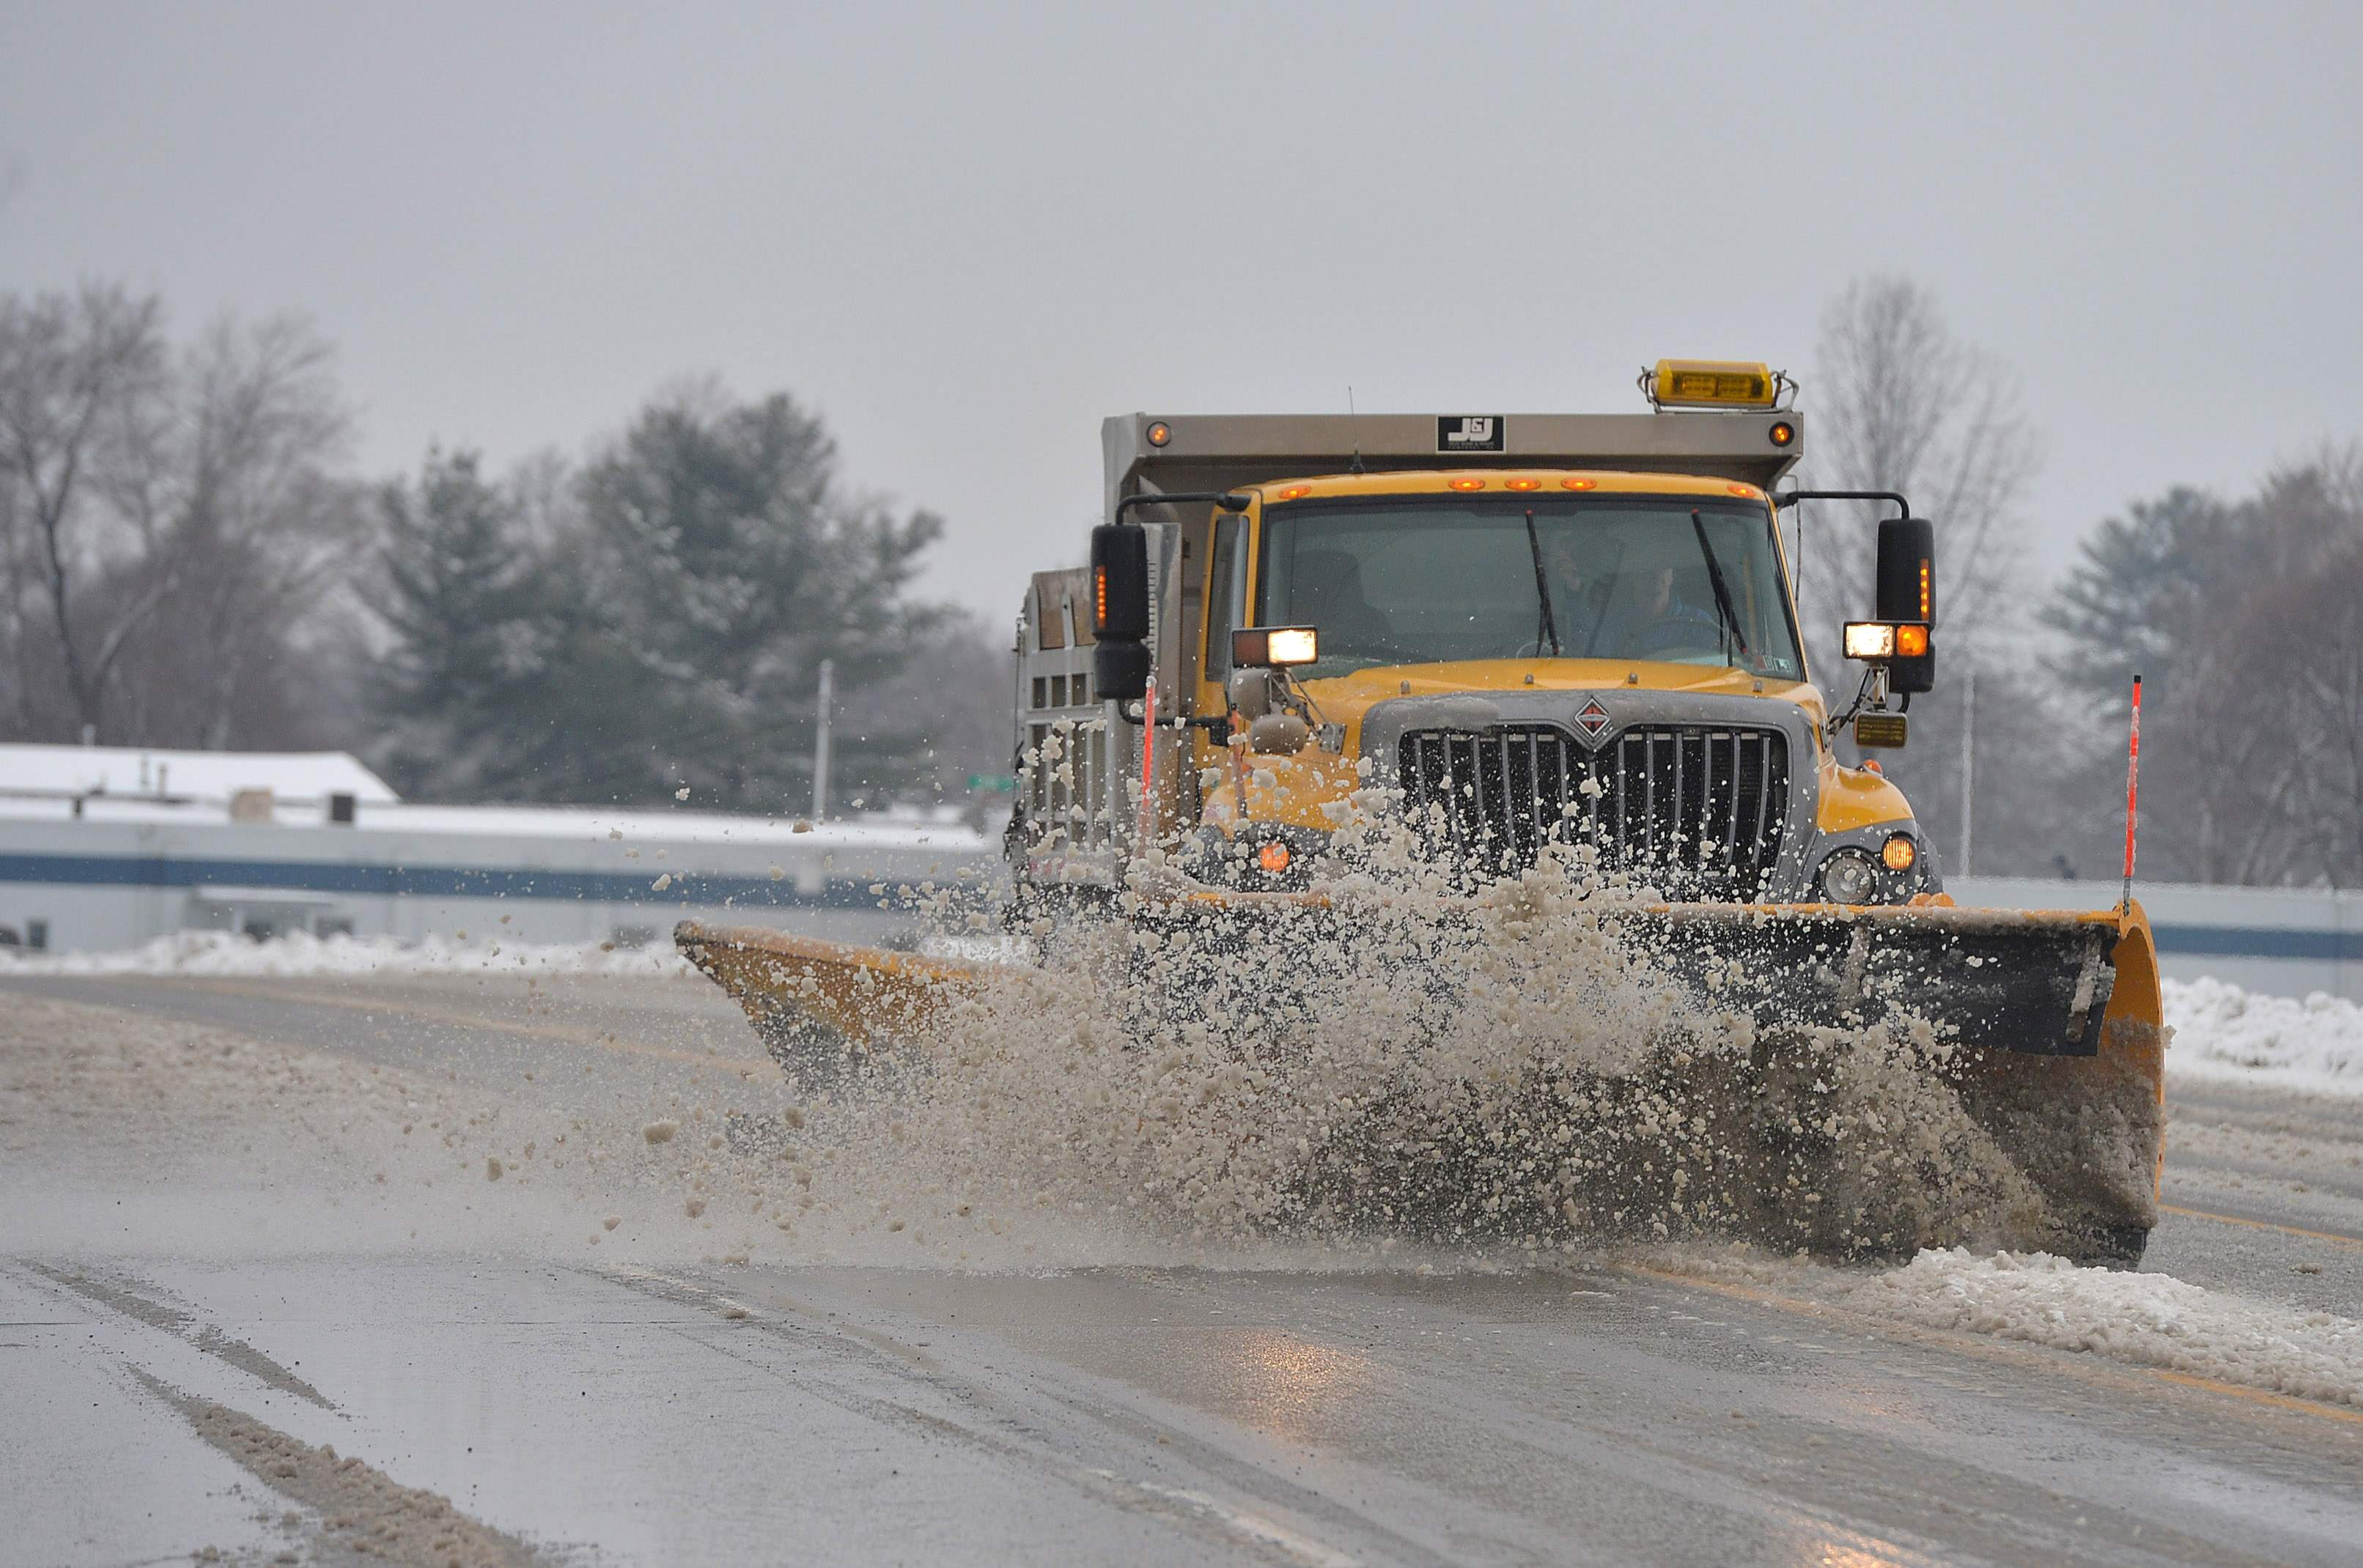 A PennDOT plow truck clears snow and slush from West 12th Street just east of the Erie International Airport in Millcreek Township, Erie County, Pa., on March 7, 2018 after a morning snow fall in the region. (AP Photo/Erie Times-News, Christopher Millette)